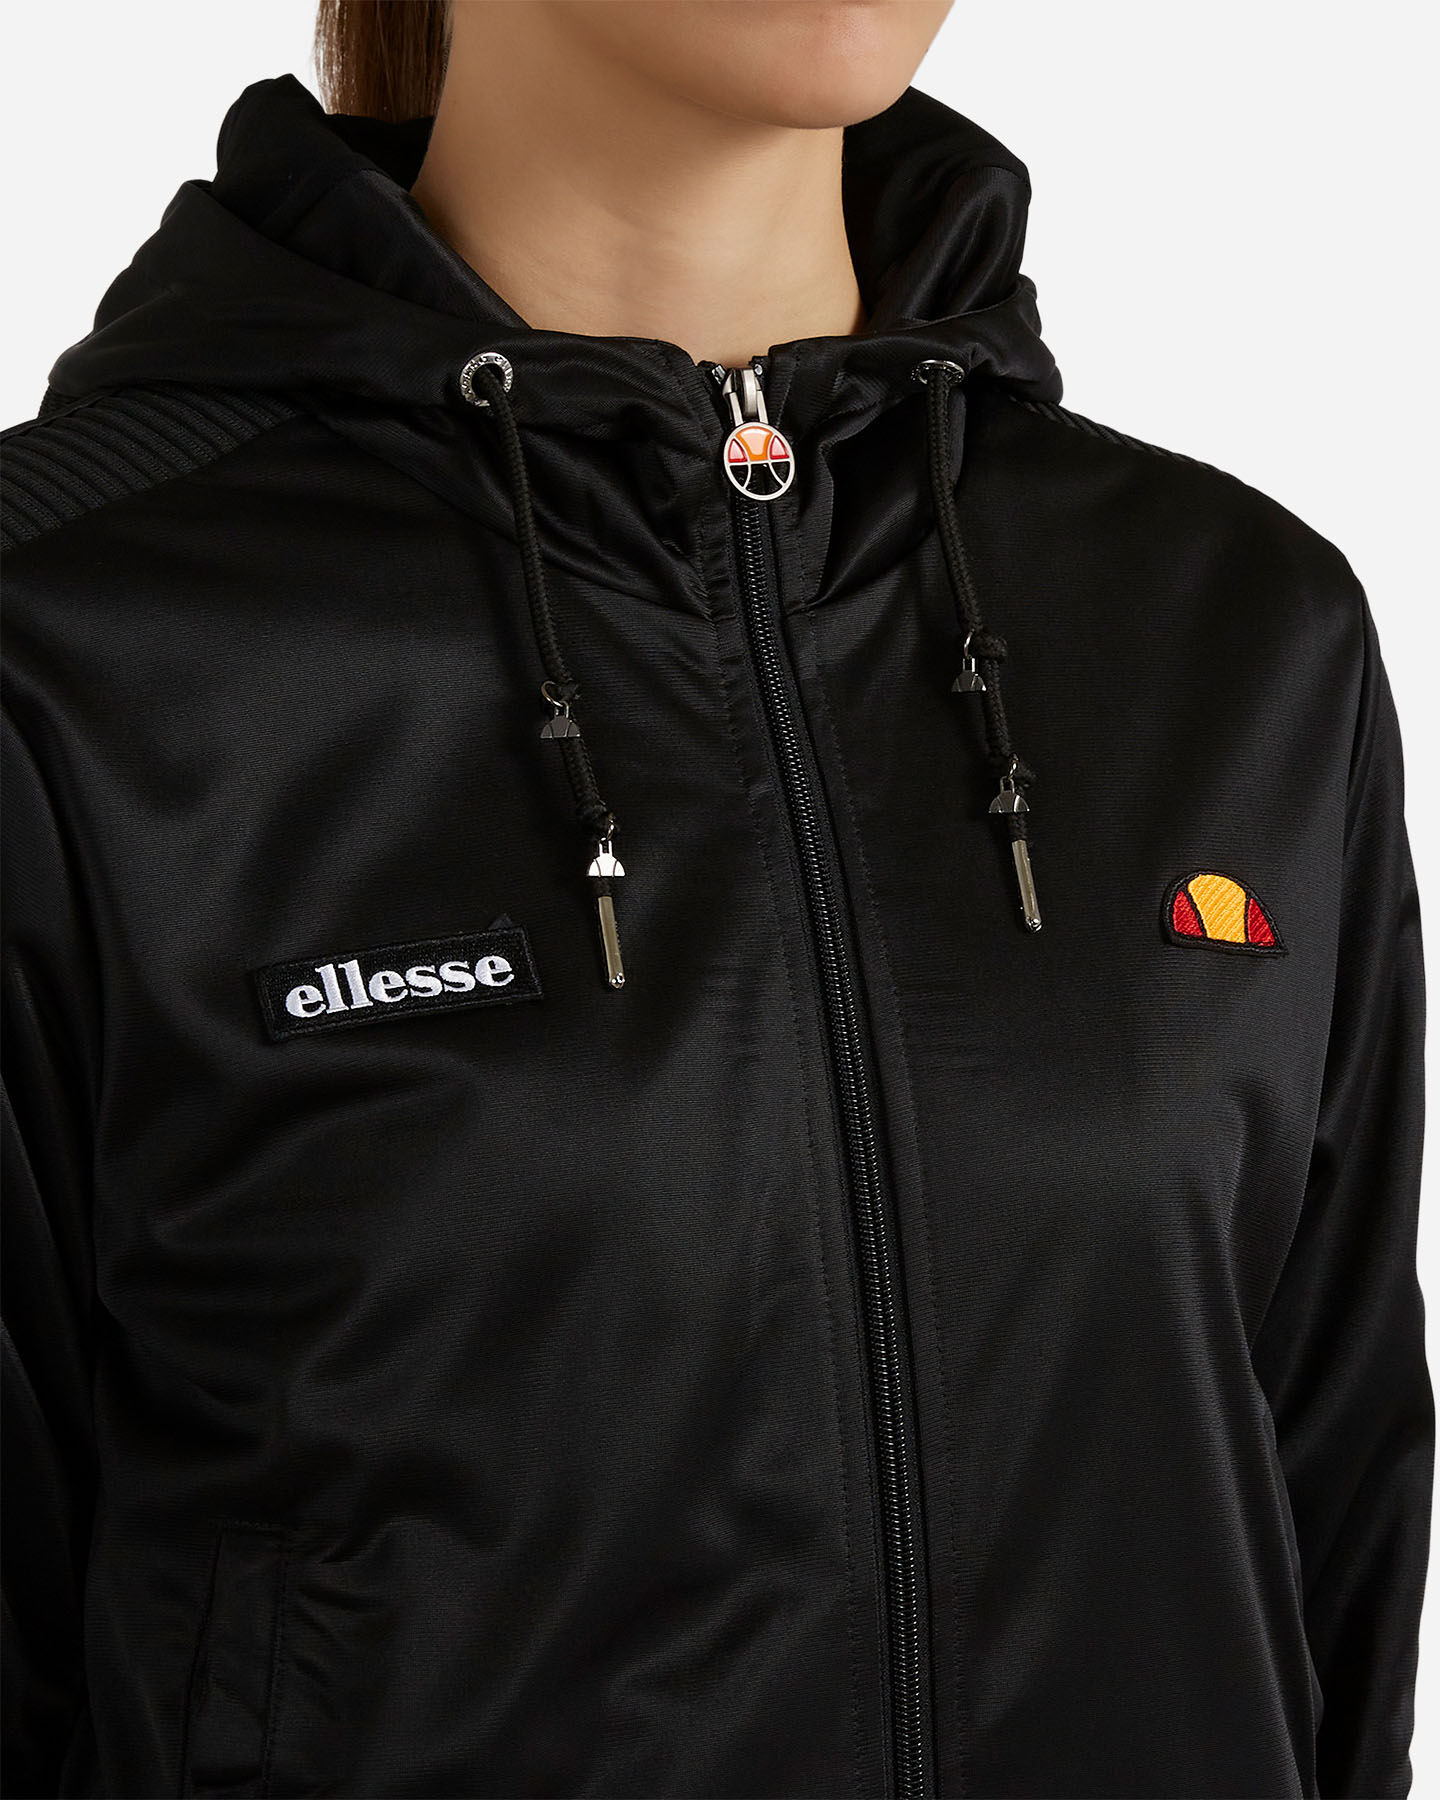 Felpa ELLESSE TRIACETATO W S4081254 scatto 4